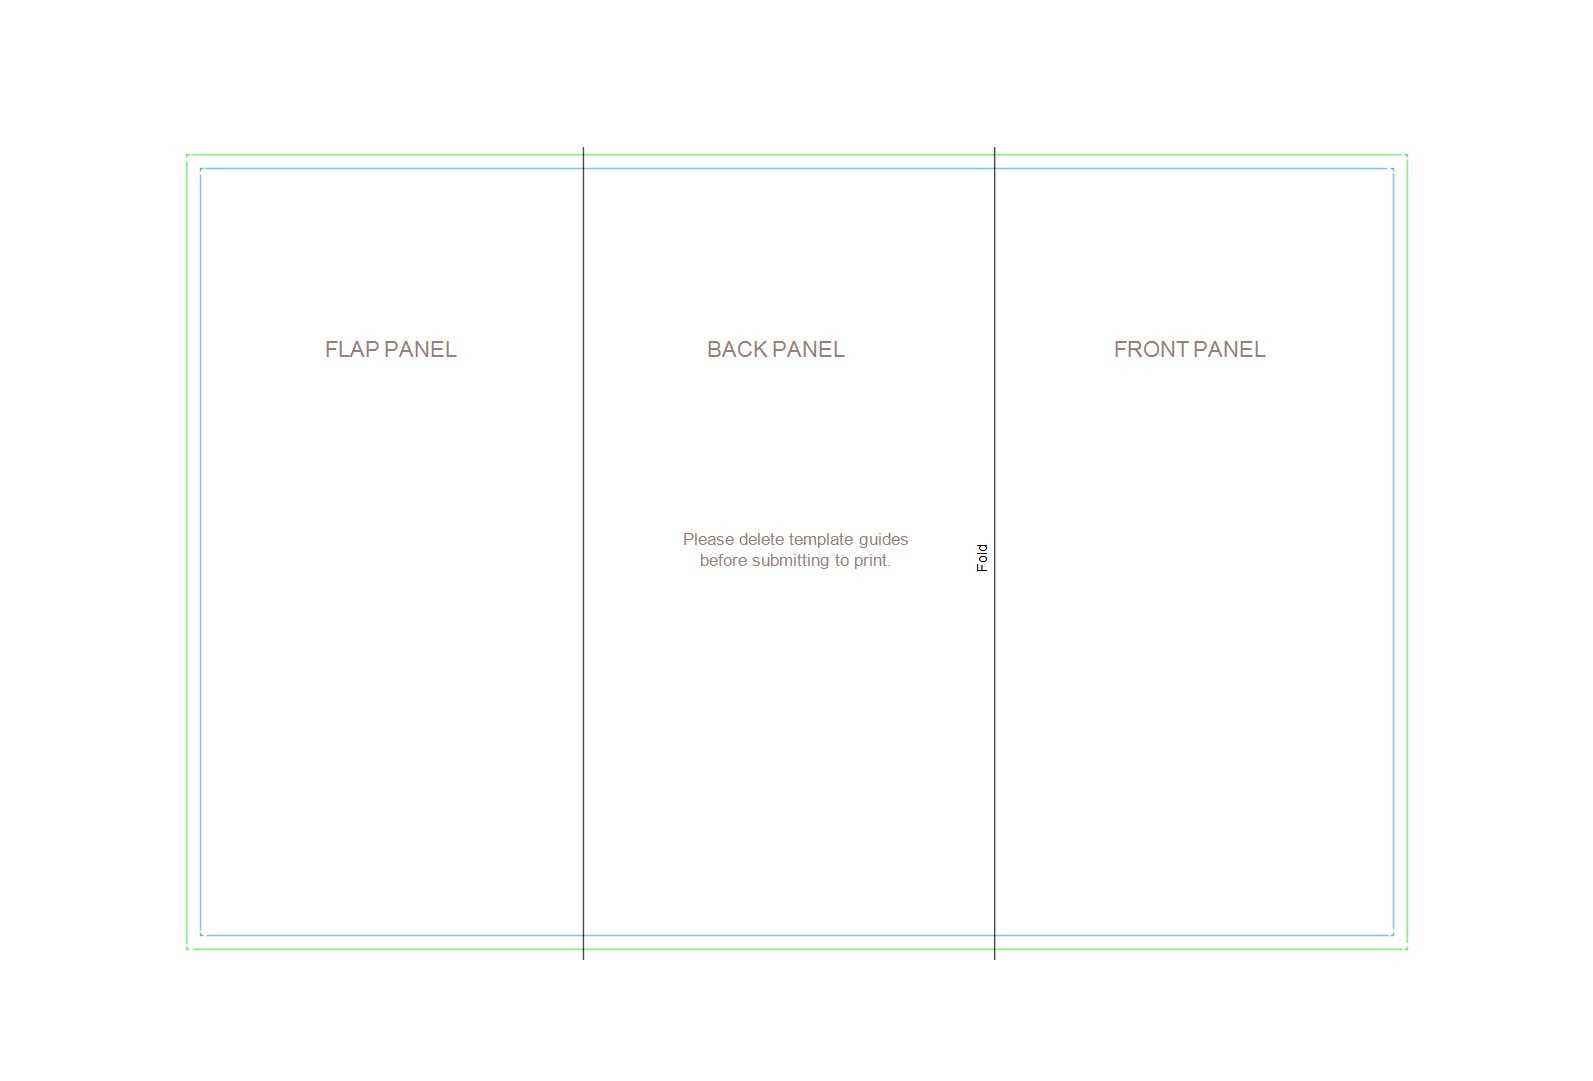 50 Free Pamphlet Templates [Word / Google Docs] ᐅ Template Lab Intended For Brochure Templates Google Docs